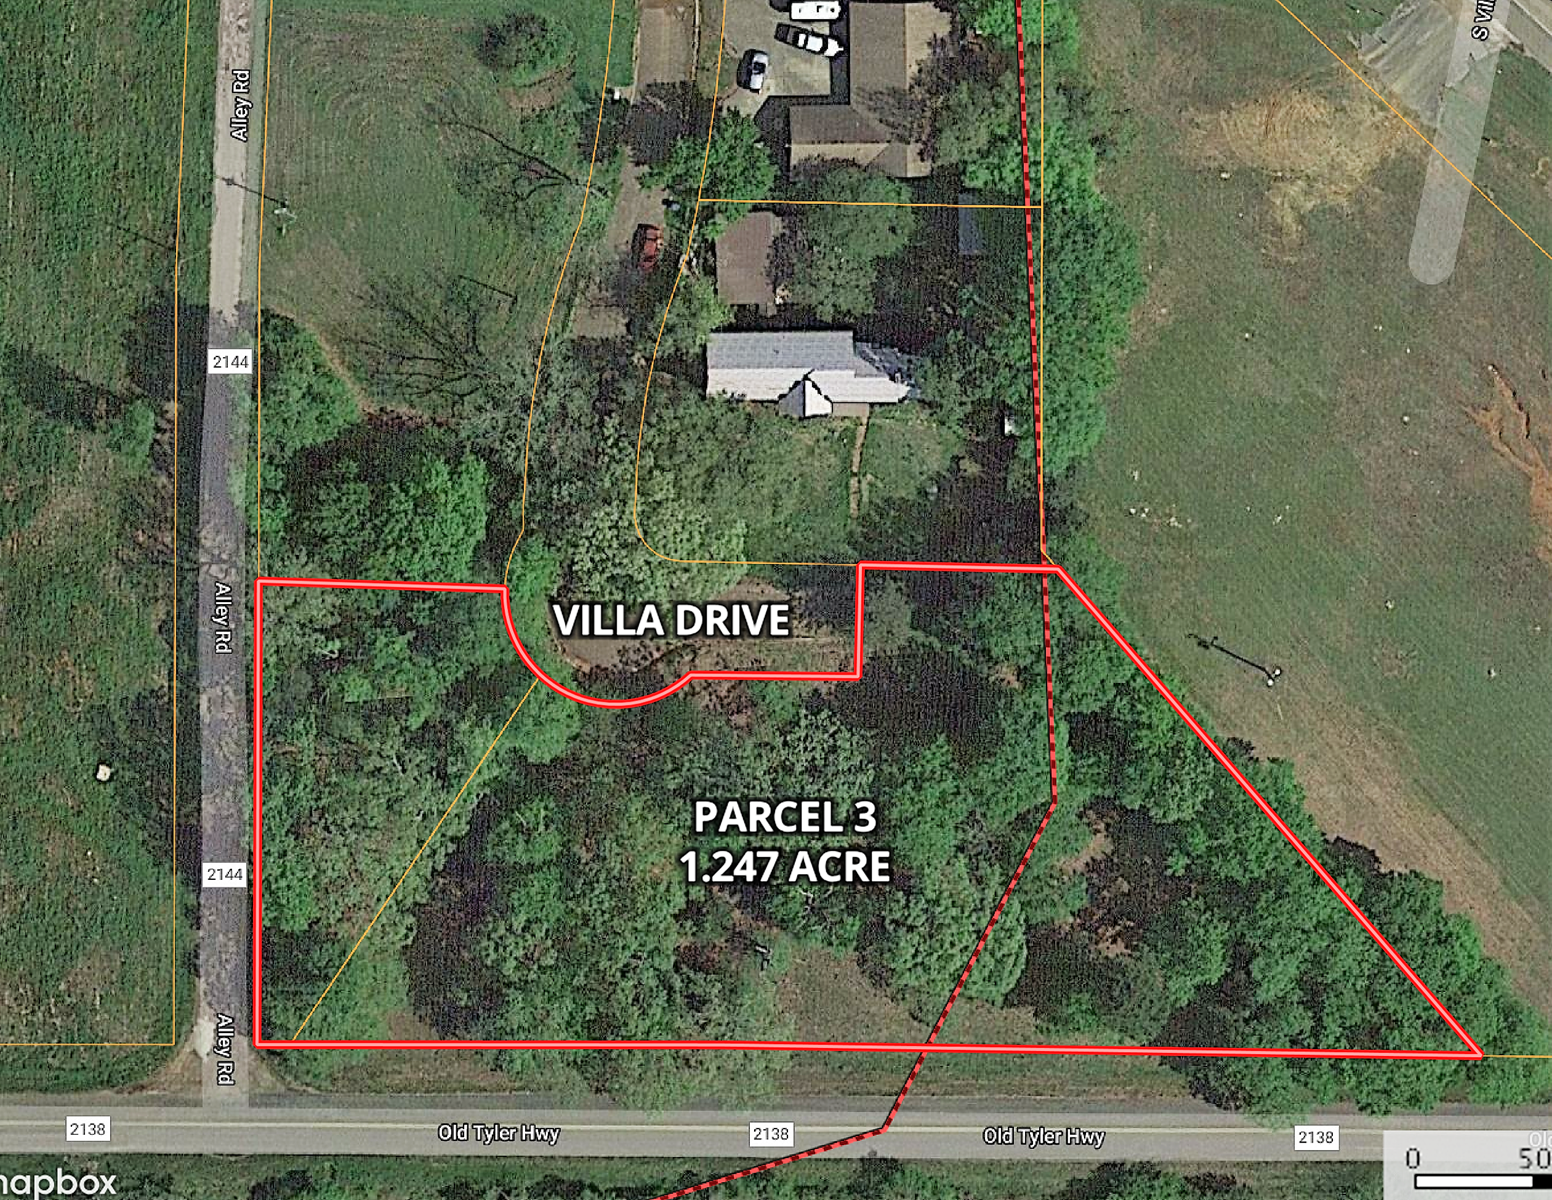 Vacant Land for Sale in Troup Texas Smith County | Parcel 3